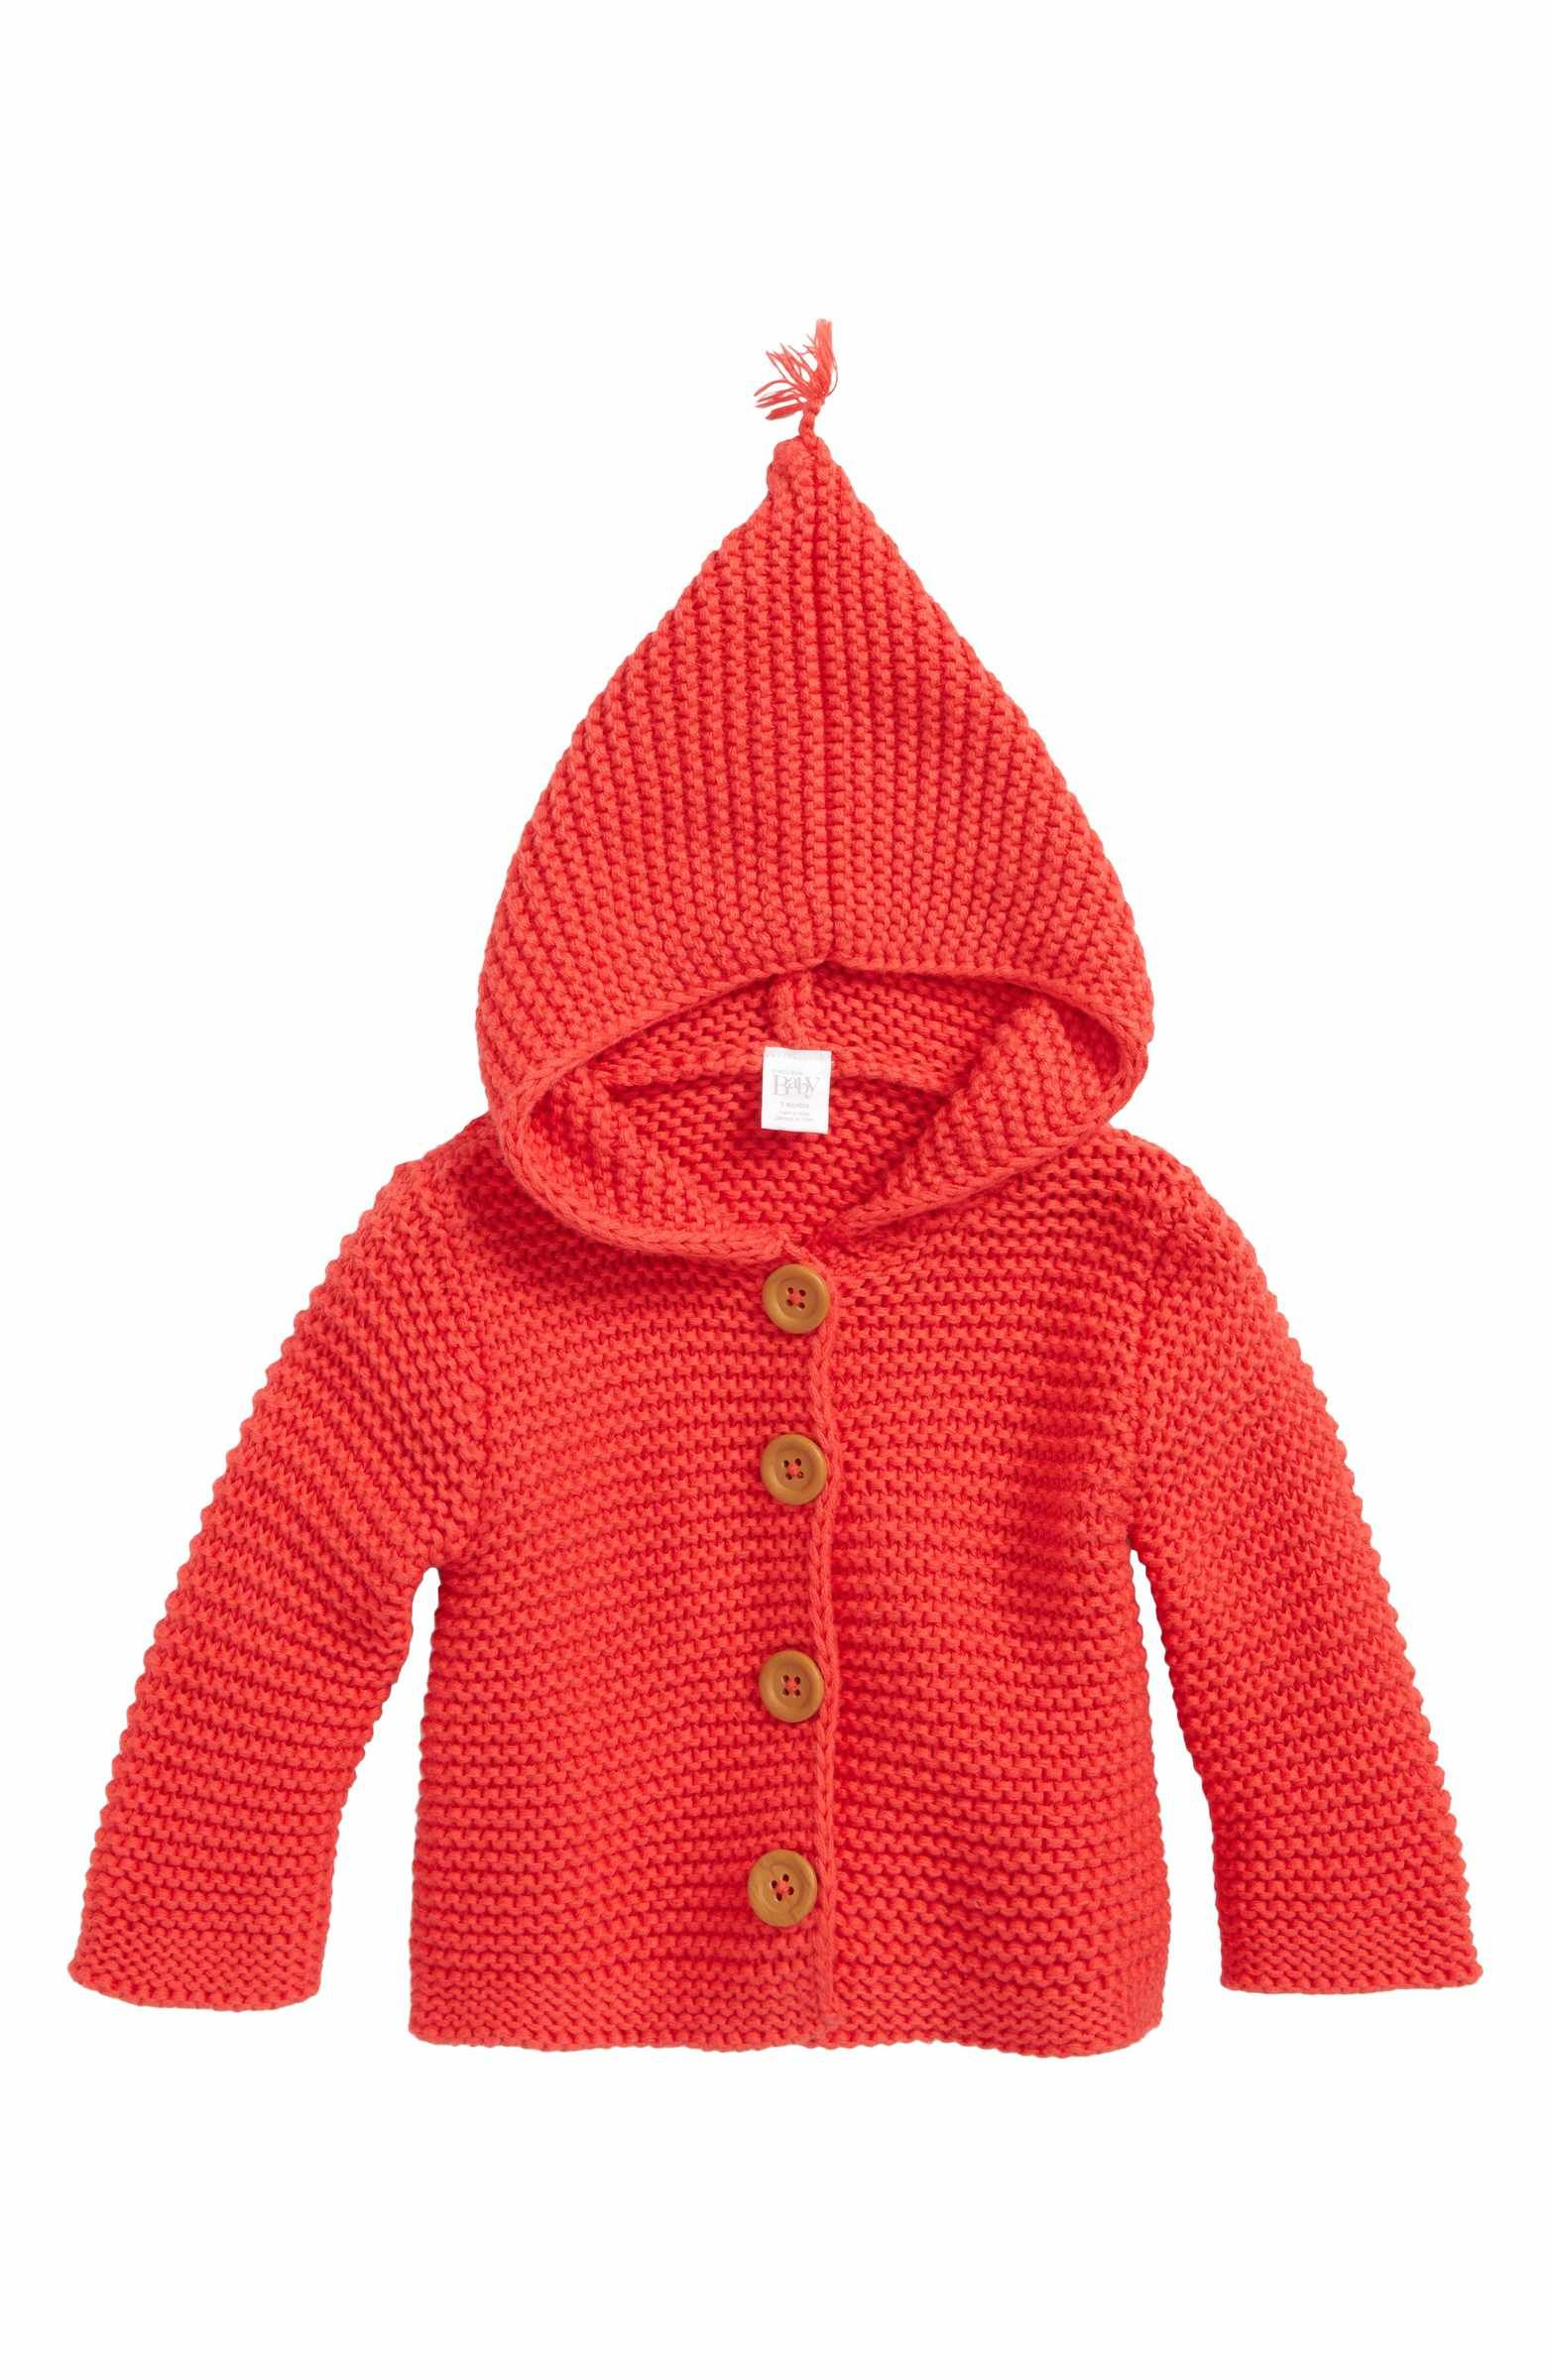 25abc88f8 Main Image - Nordstrom Baby Lofty Organic Cotton Hooded Cardigan ...